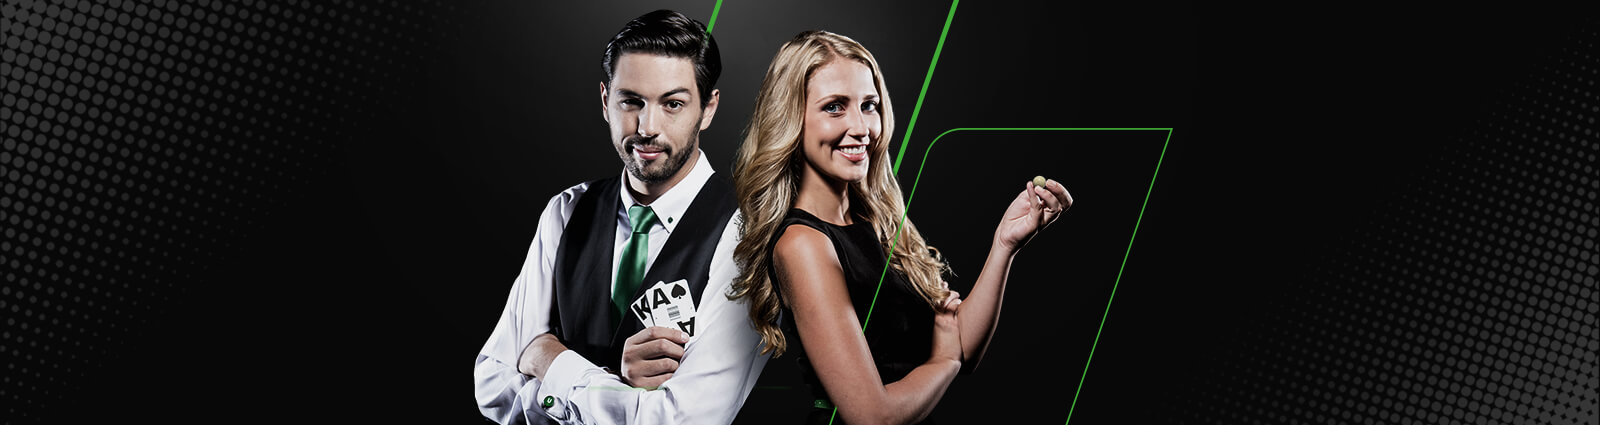 Promo page banner live casino generic BE